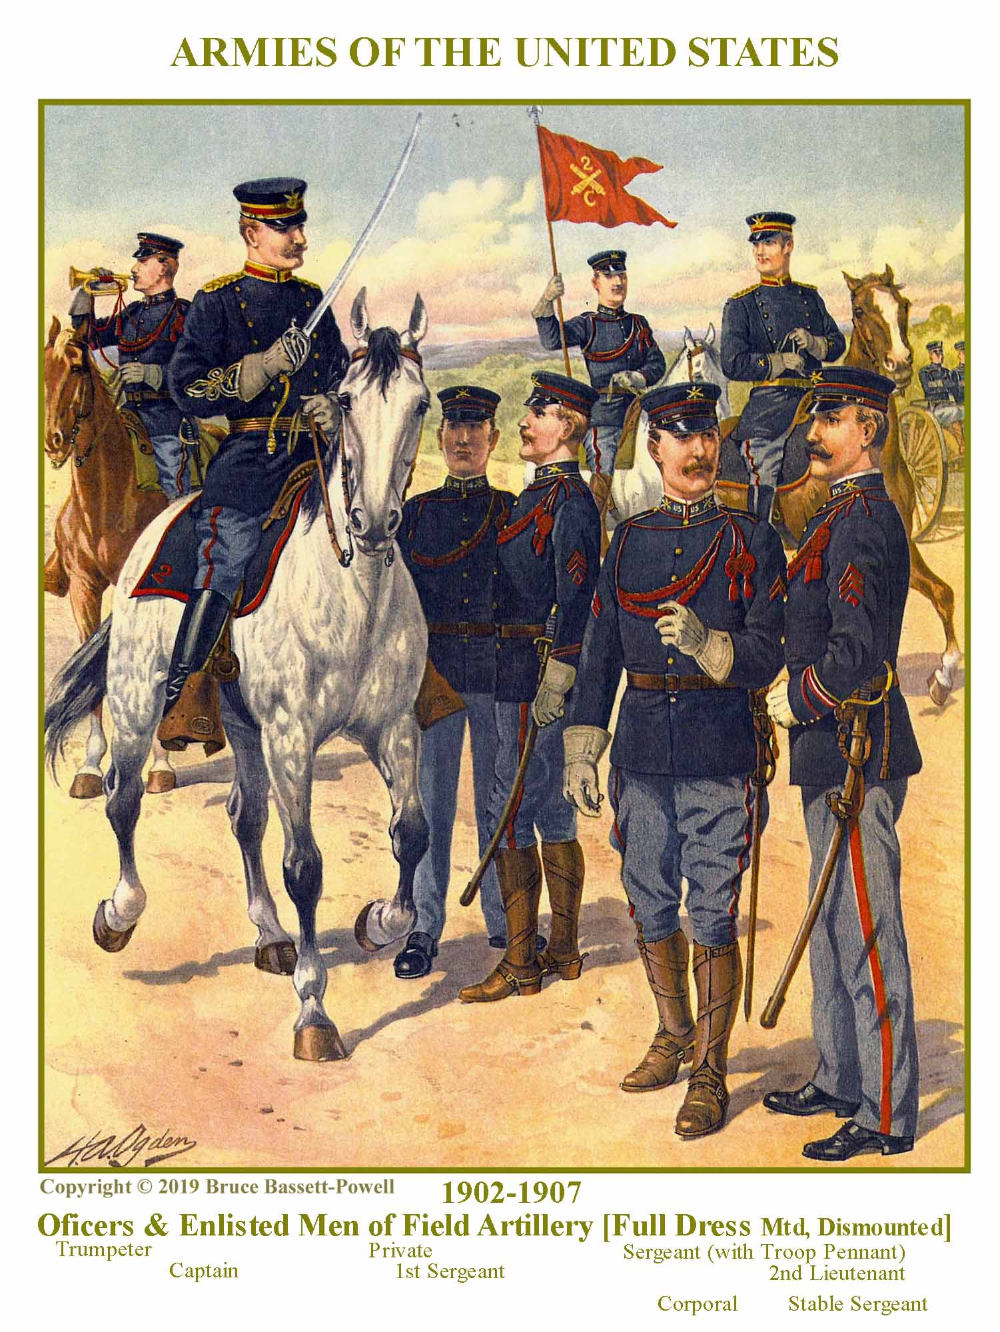 U S Army Officers Enlisted Men Of Field Artillery Full Dress Mounted Dismounted 1902 1907 The Spanish American War History War American Army